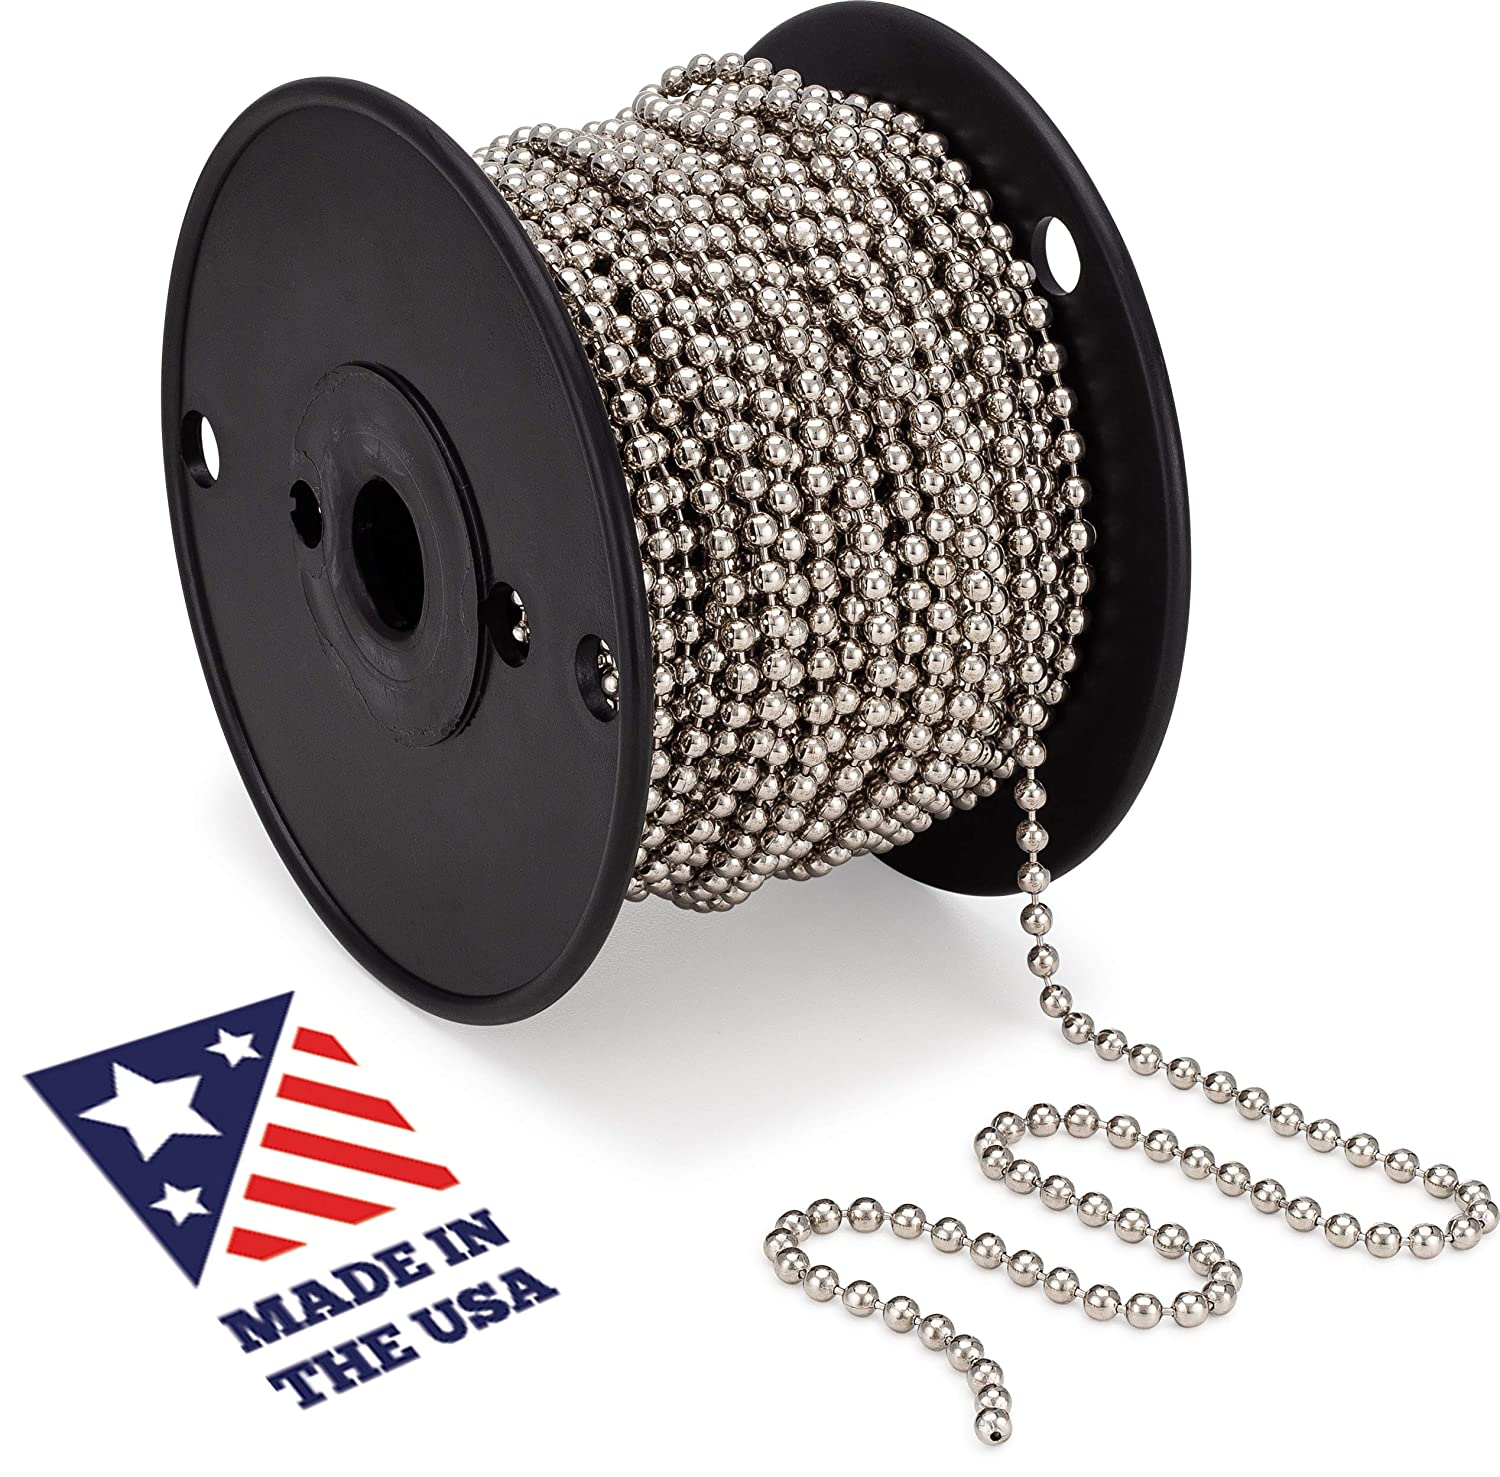 #10 Beaded Ball Chain – Nickel Plated Steel 100 Feet Spool for Vertical Window Blinds | Plumbing and Industrial Equipment Labeling | Commercial Retaining Applications 91ZcoyEwg9L